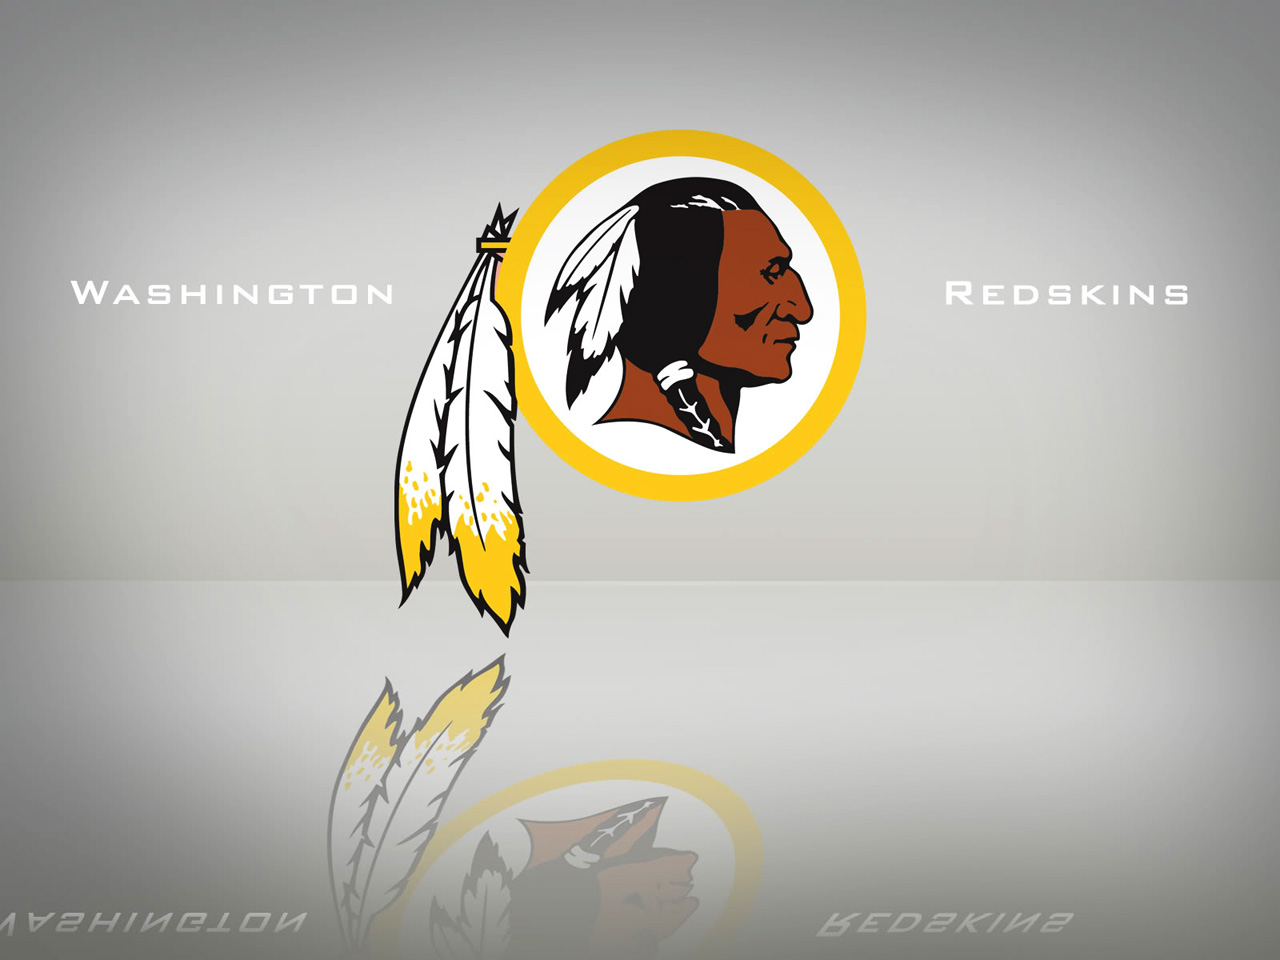 day Washington Redskins wallpaper Washington Redskins wallpapers 1280x960